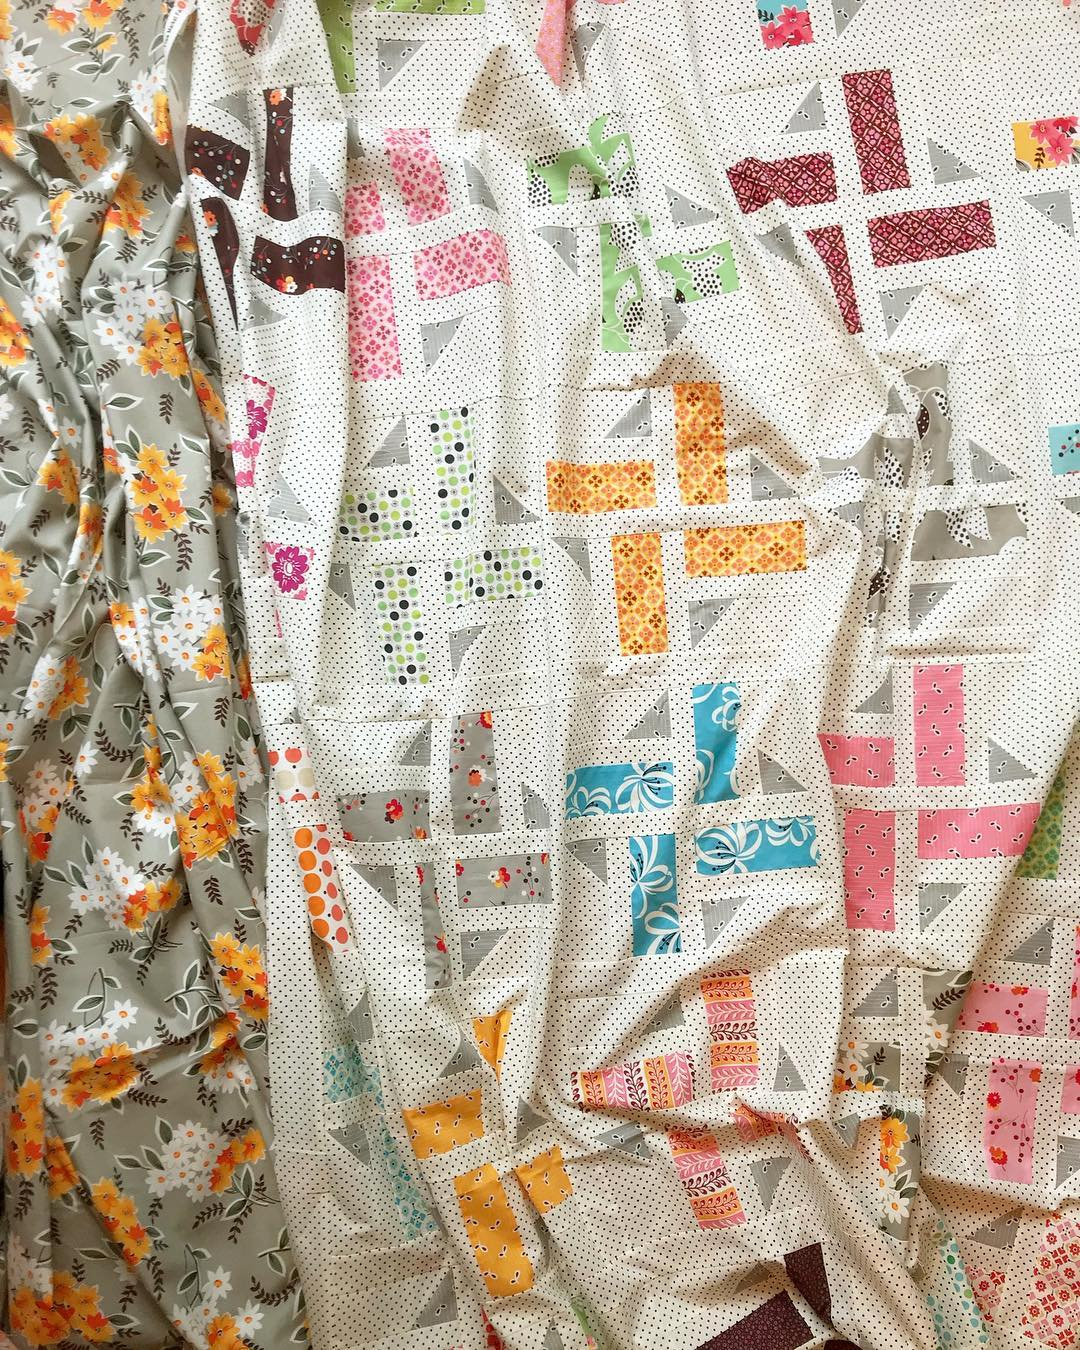 WIP Division quilt by Maker Valley / Holly Lesue. Quilt pattern by A Bright Corner